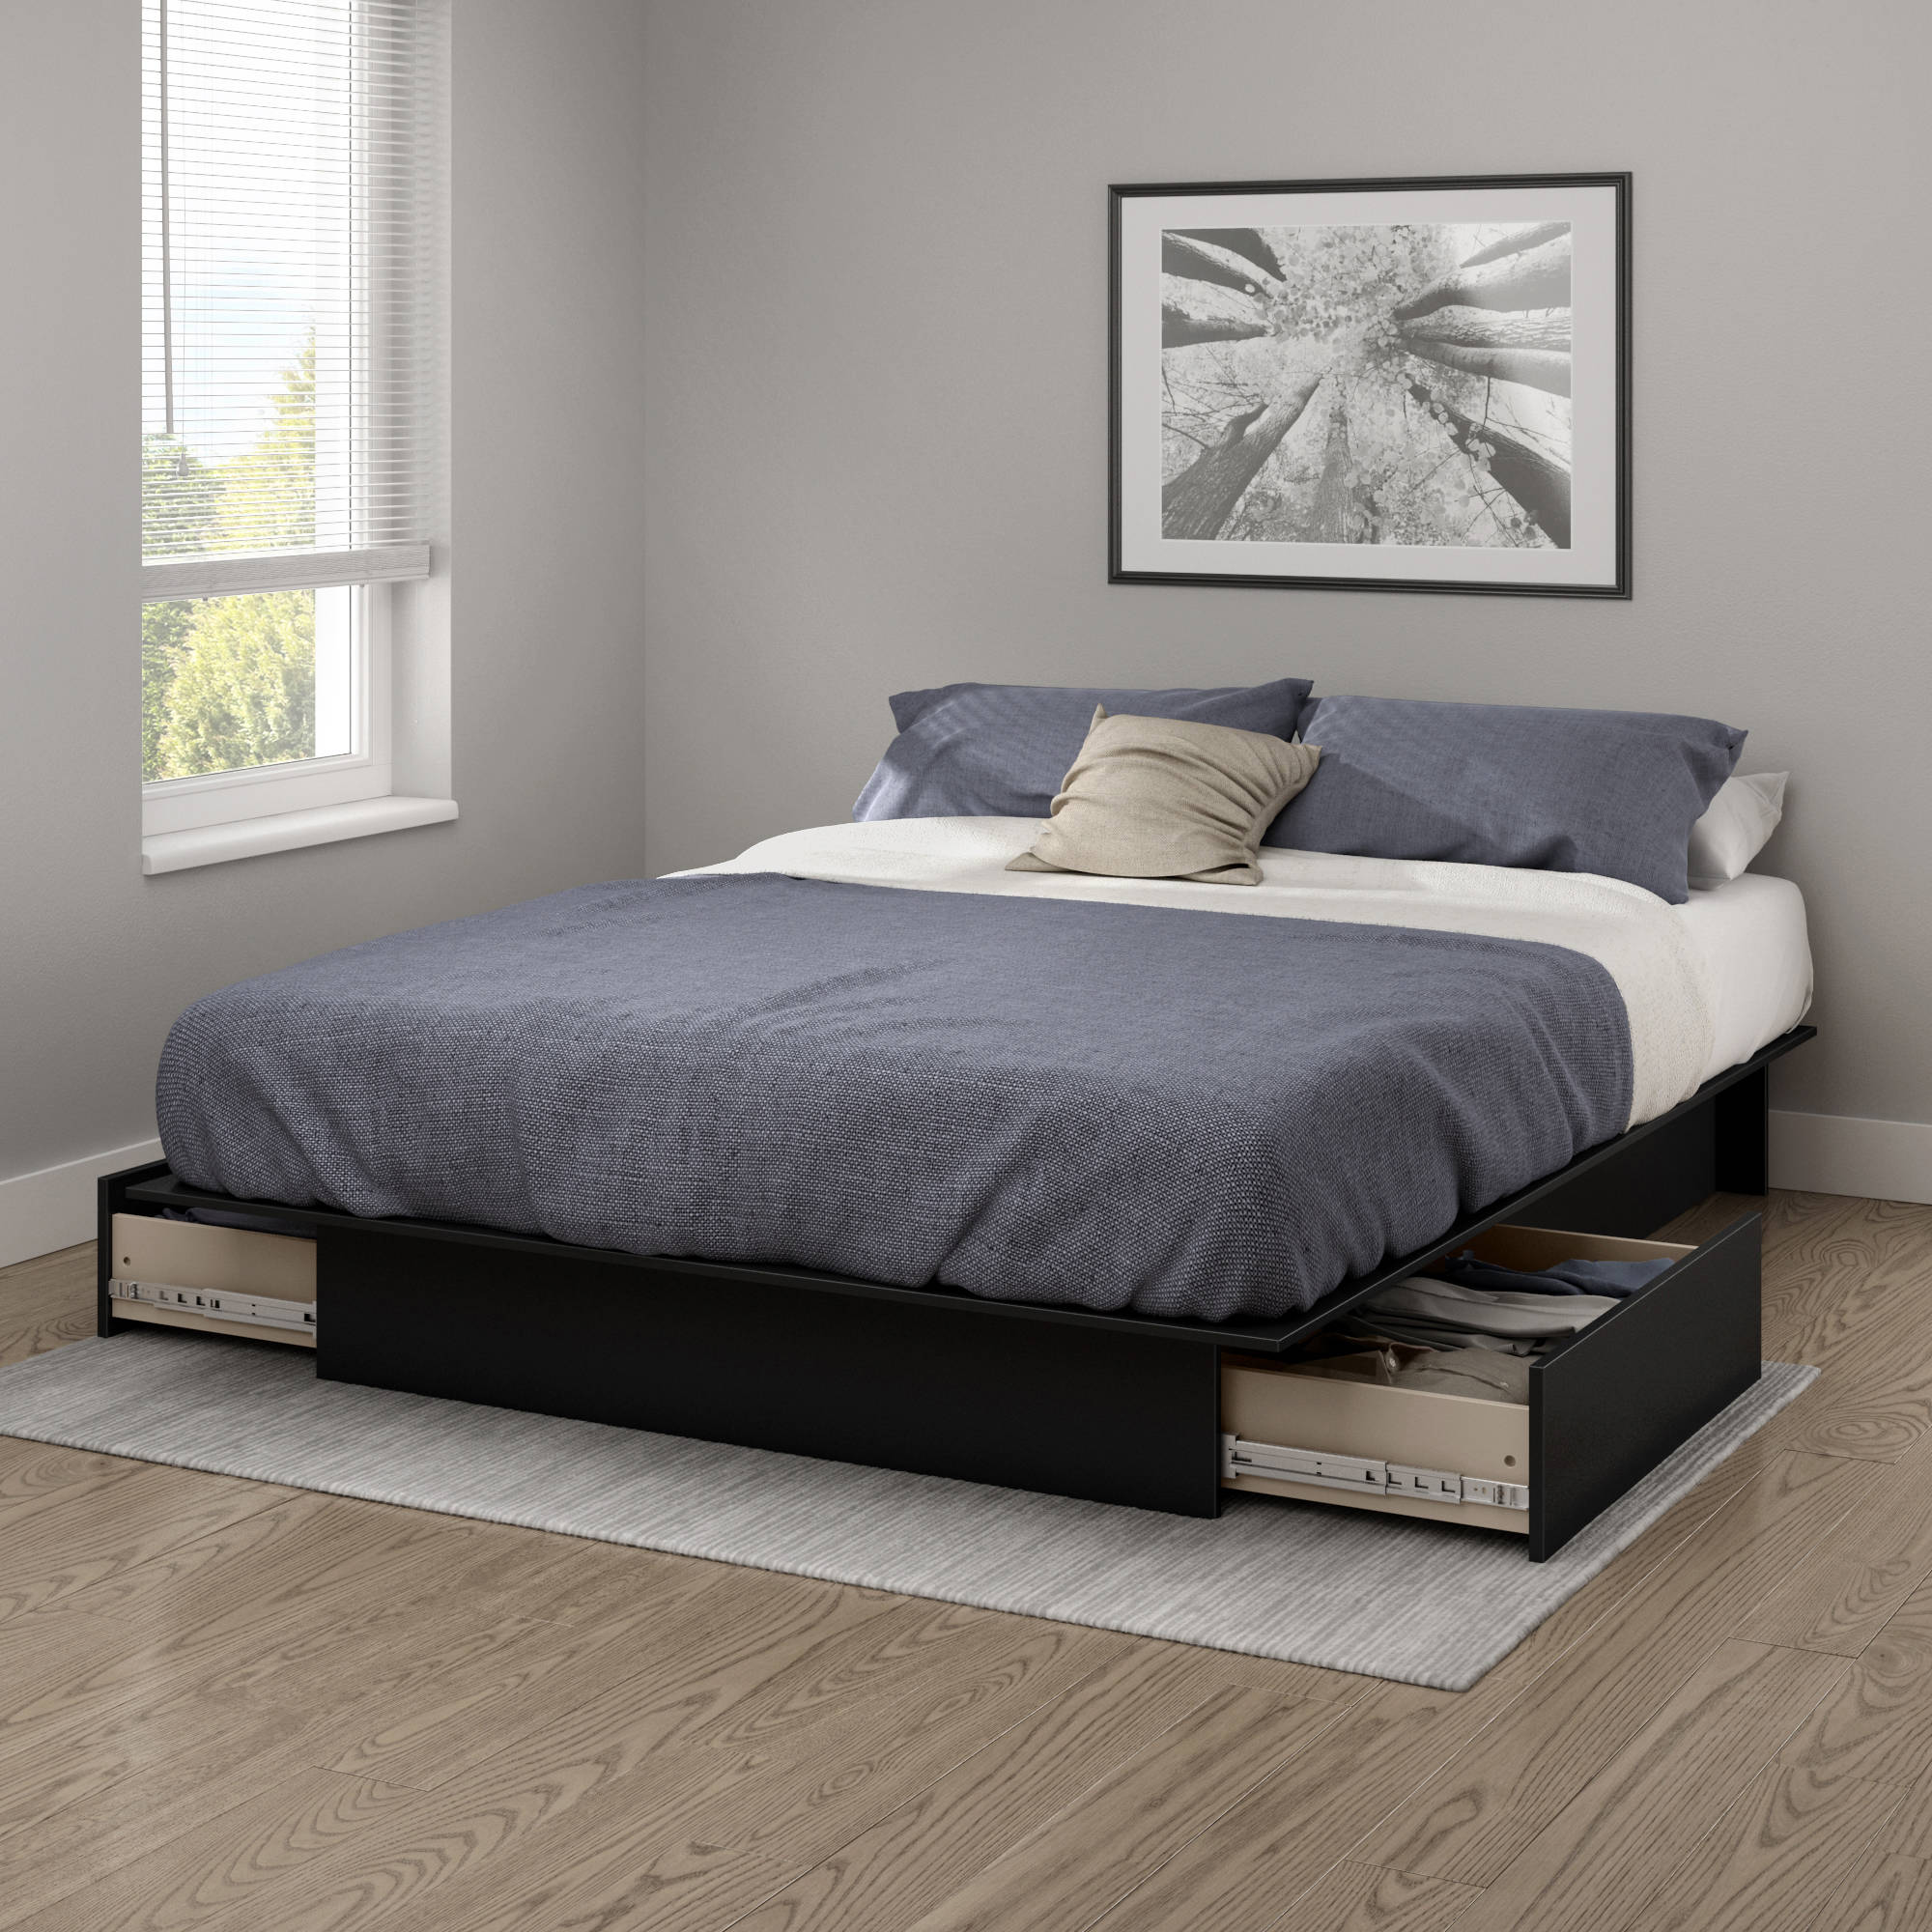 South Shore Basics Platform Bed With Molding Multiple Sizes And